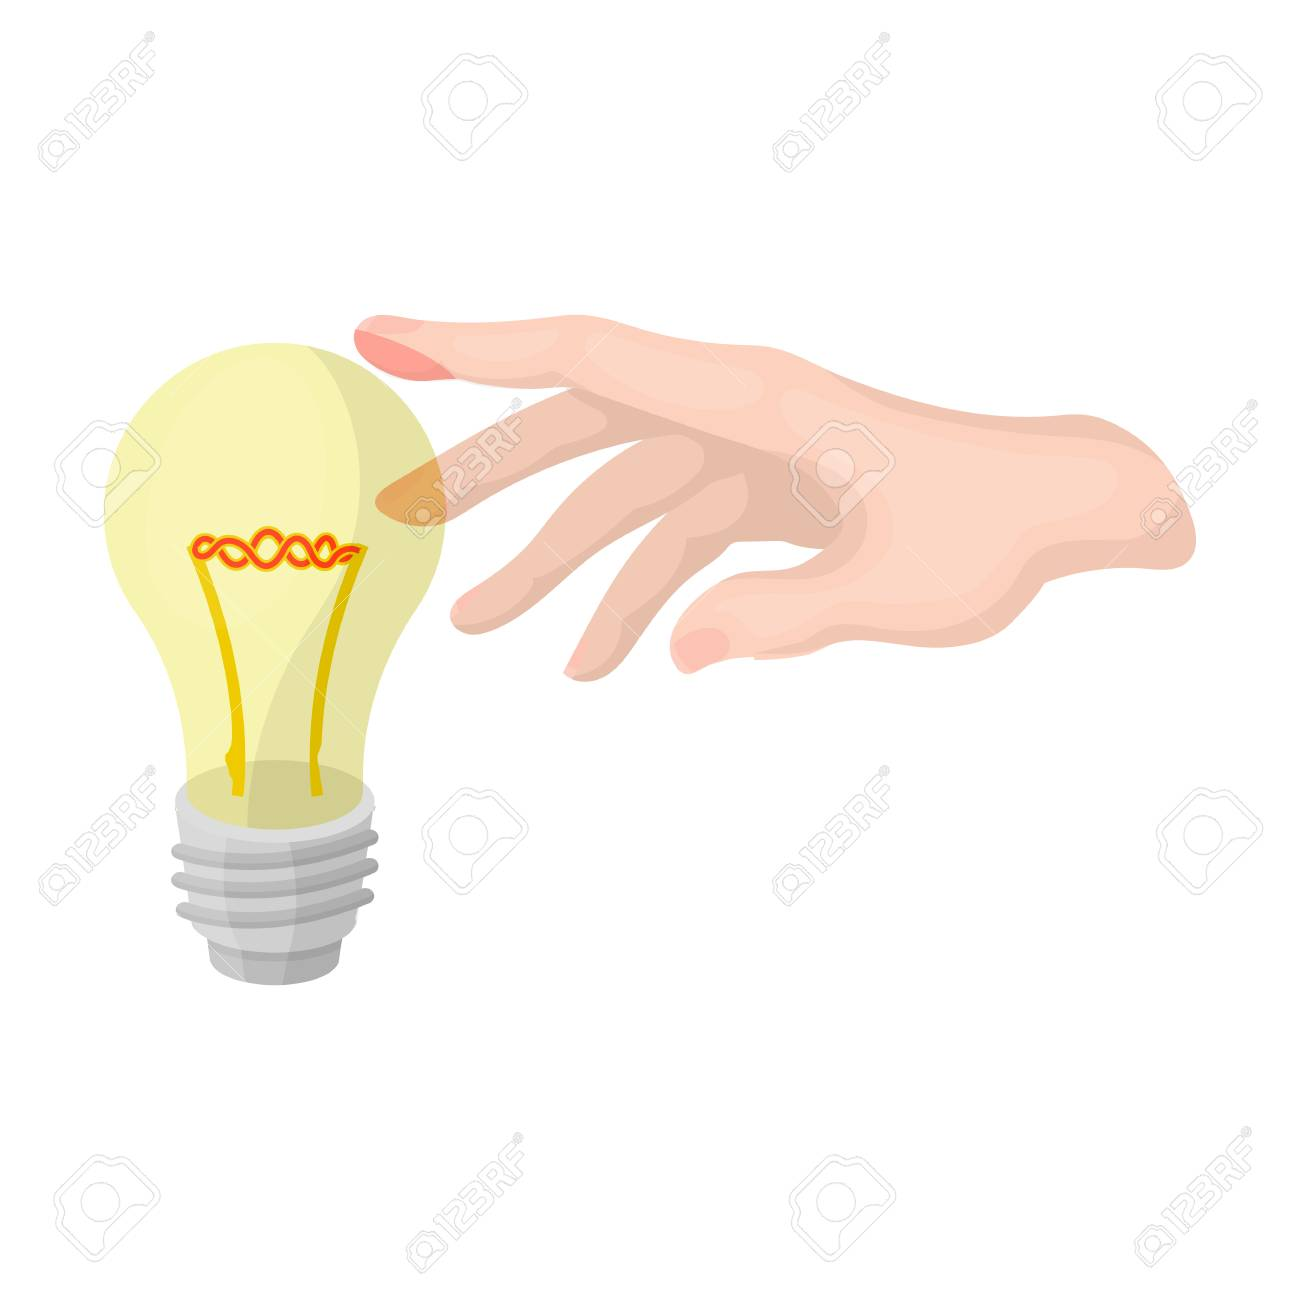 Replacement Of An Electric Bulb. Incandescent Lamp Single Icon ... for Incandescent Lamp Symbol  589hul